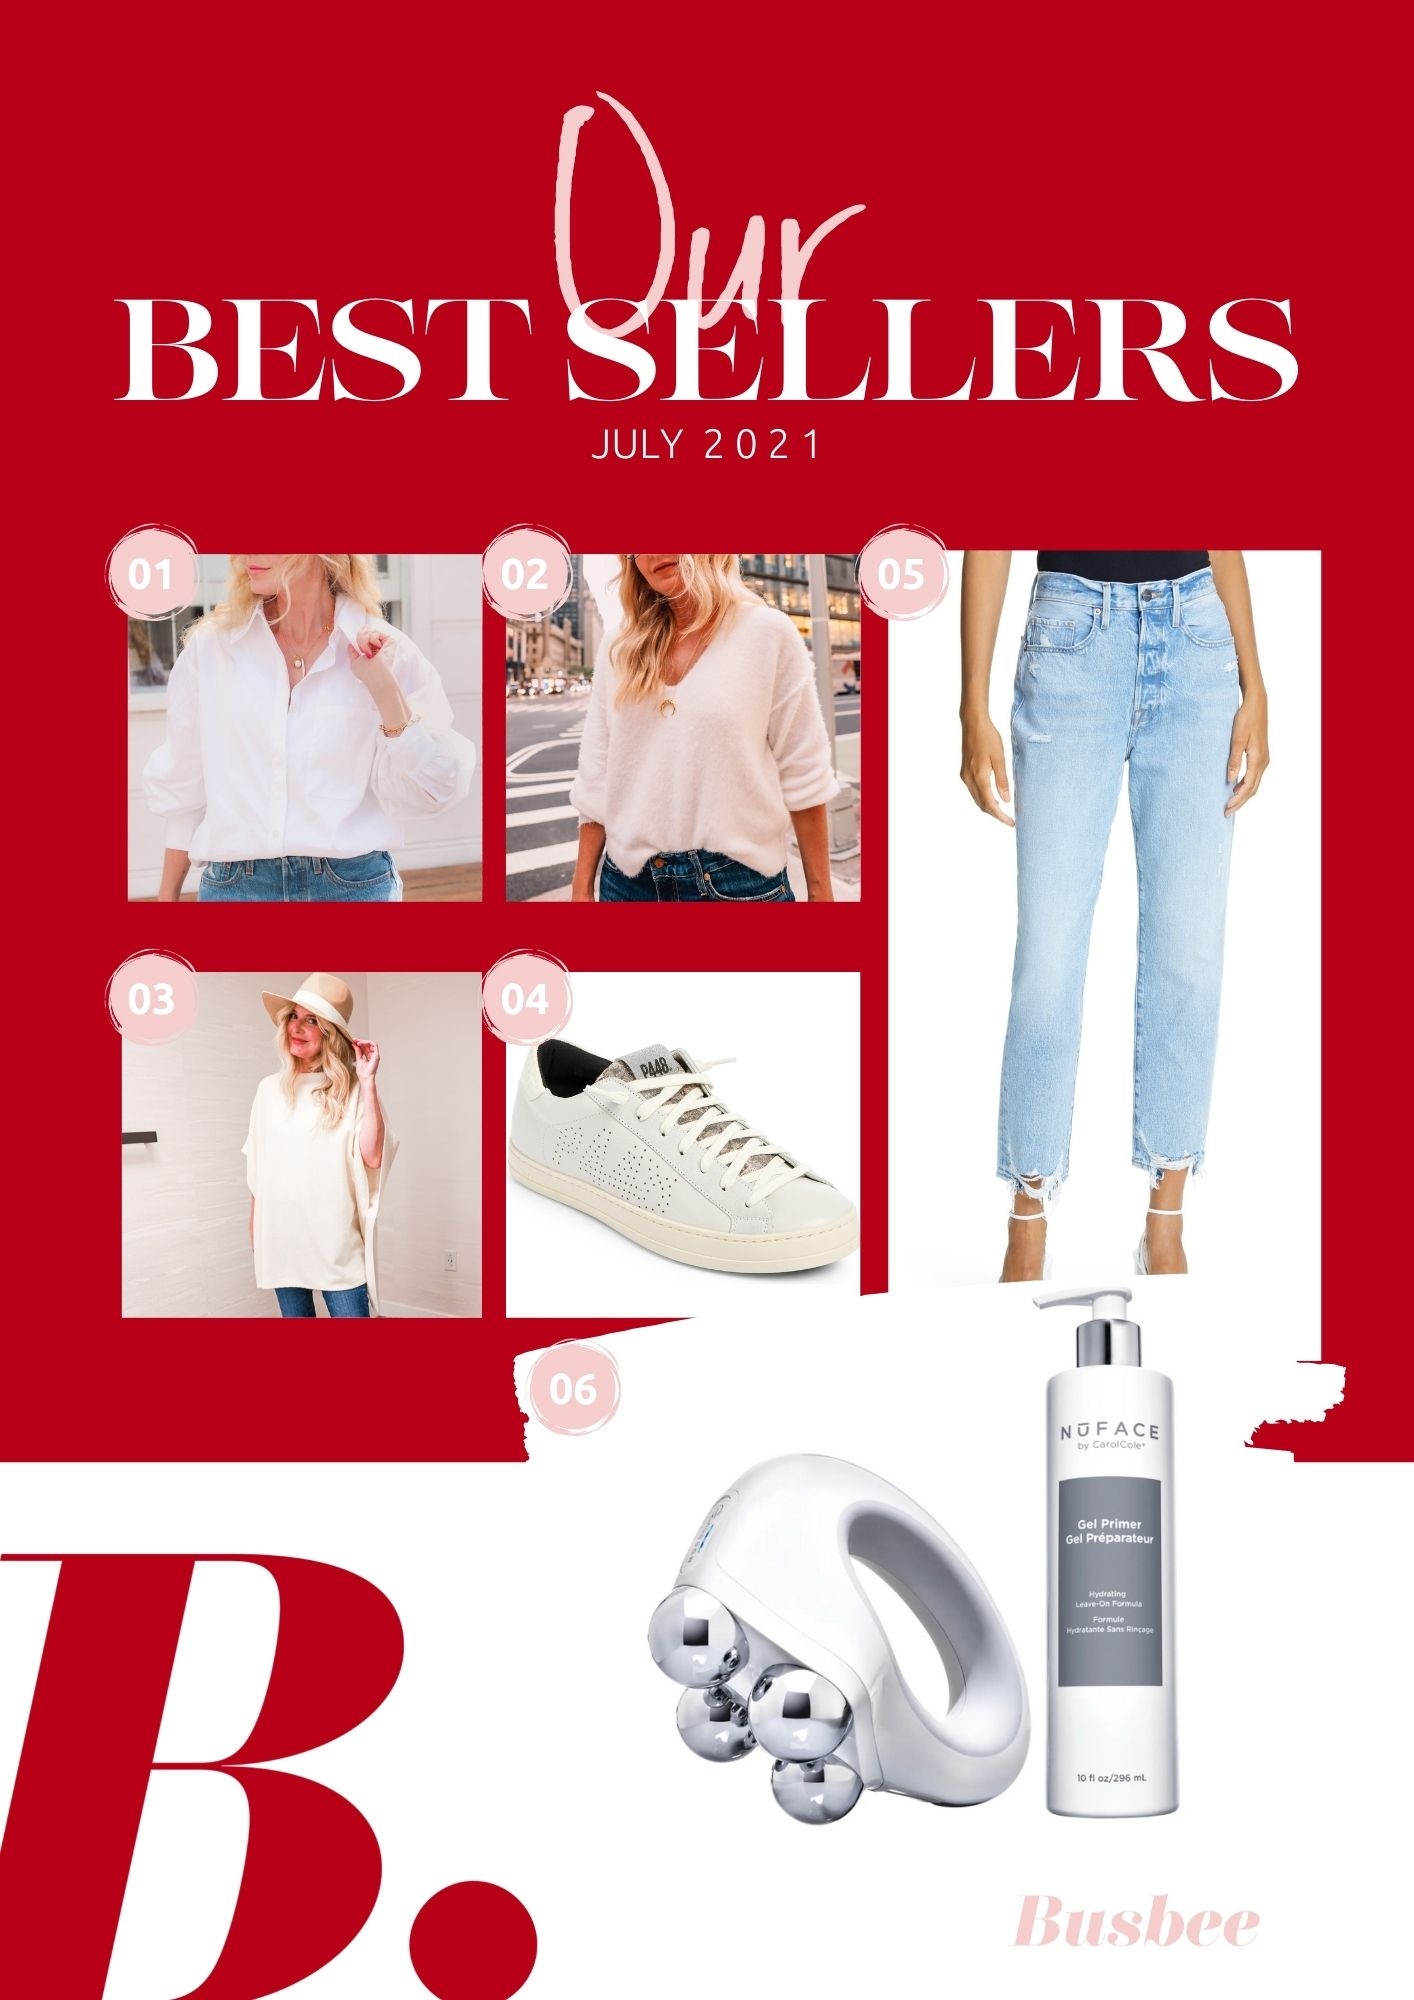 july best sellers, erin busbee, read favorites, best selelrs, nordstrom best sellers, nordstrom, nordstrom anniversary sale, open edit white button down, free people princess sweater, nordstrom wool & cashmere poncho, p448 john low top sneakers, frame le original cropped ripped jeans, nubody toning device